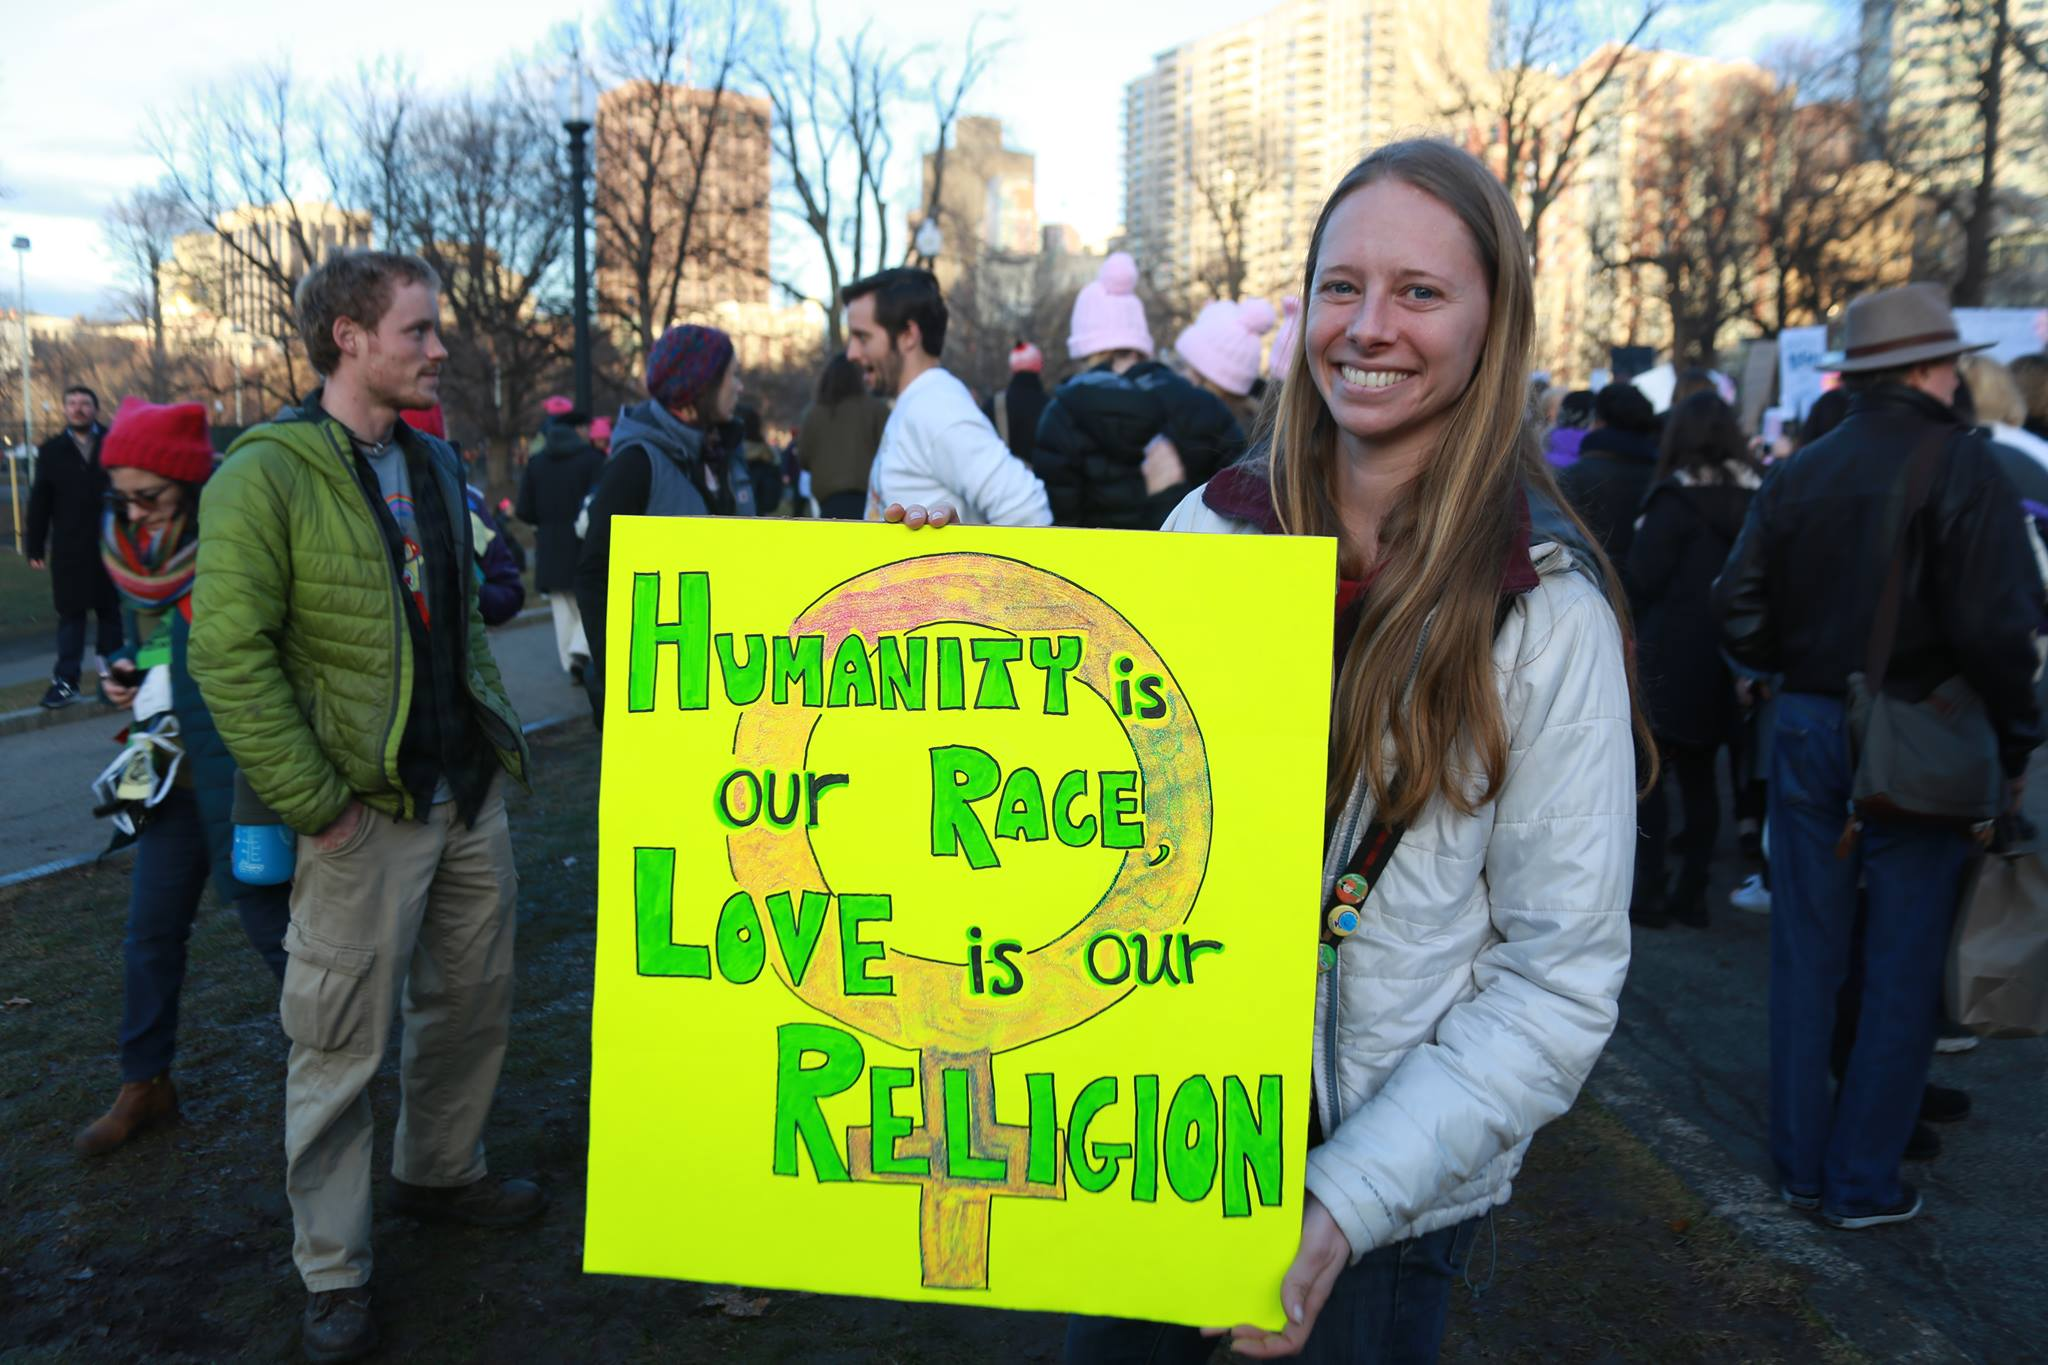 Photo by Vinny Mwano at a protest in Boston